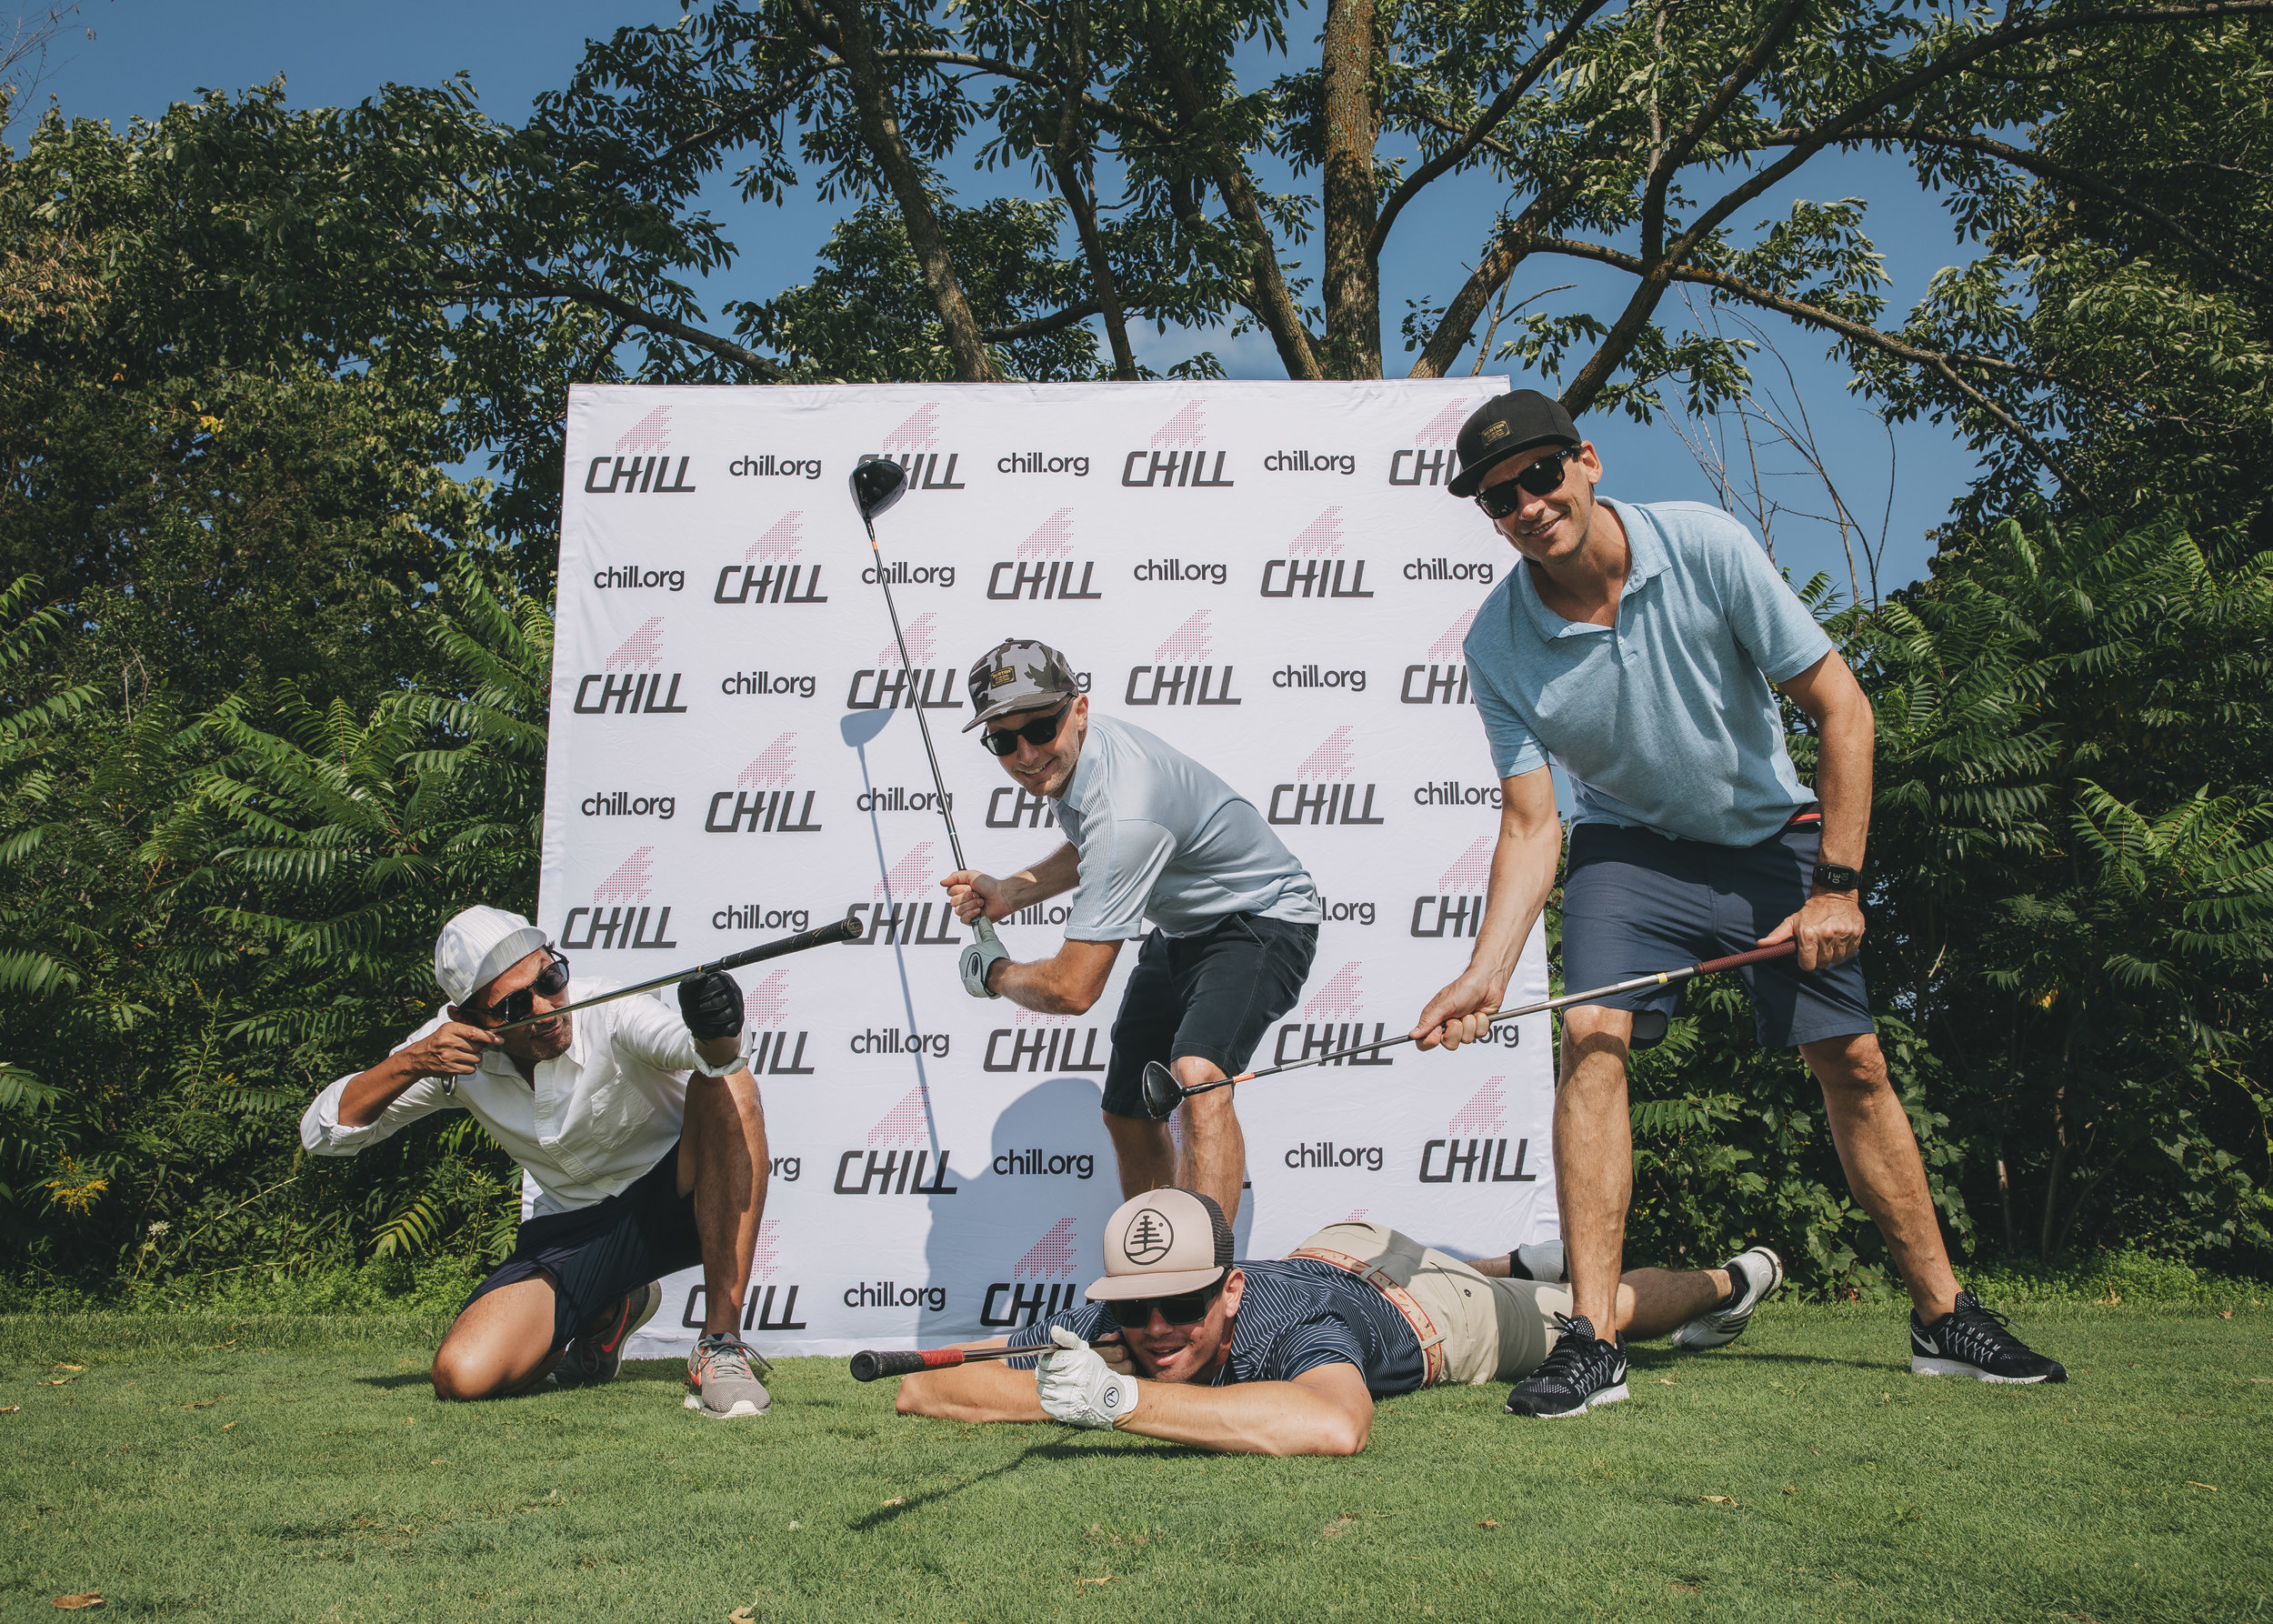 082718_ChillGolf_Light7Burton_JesseDawson_063.jpg